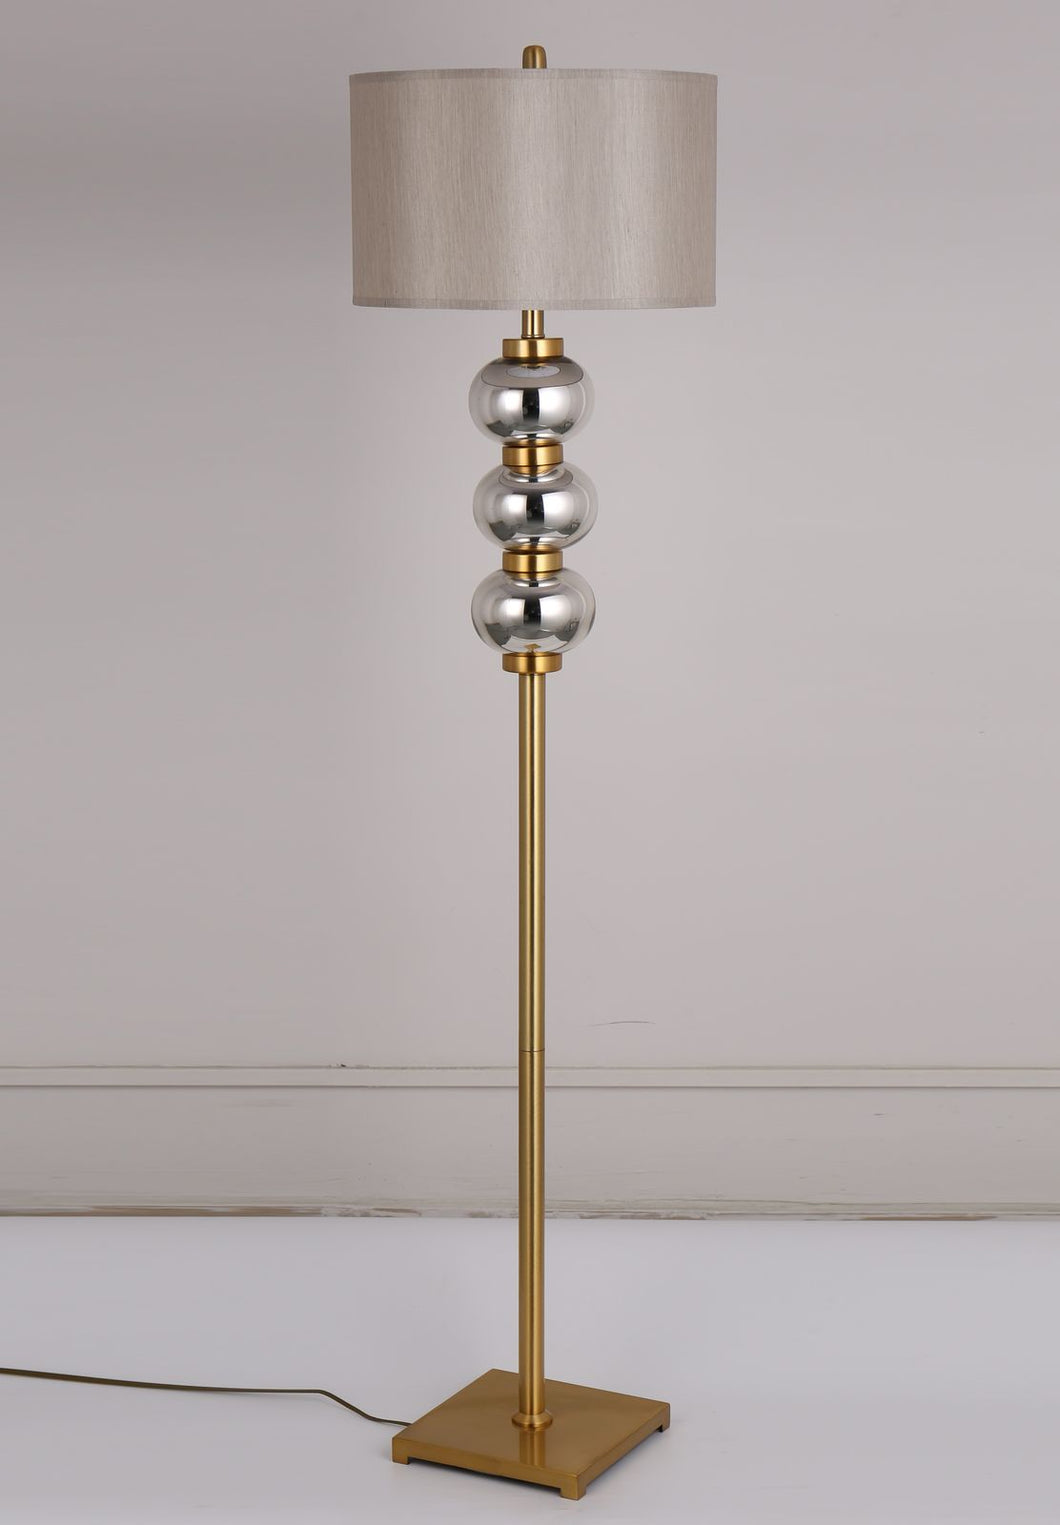 Sam Floor Lamp from Katie Bleu collection